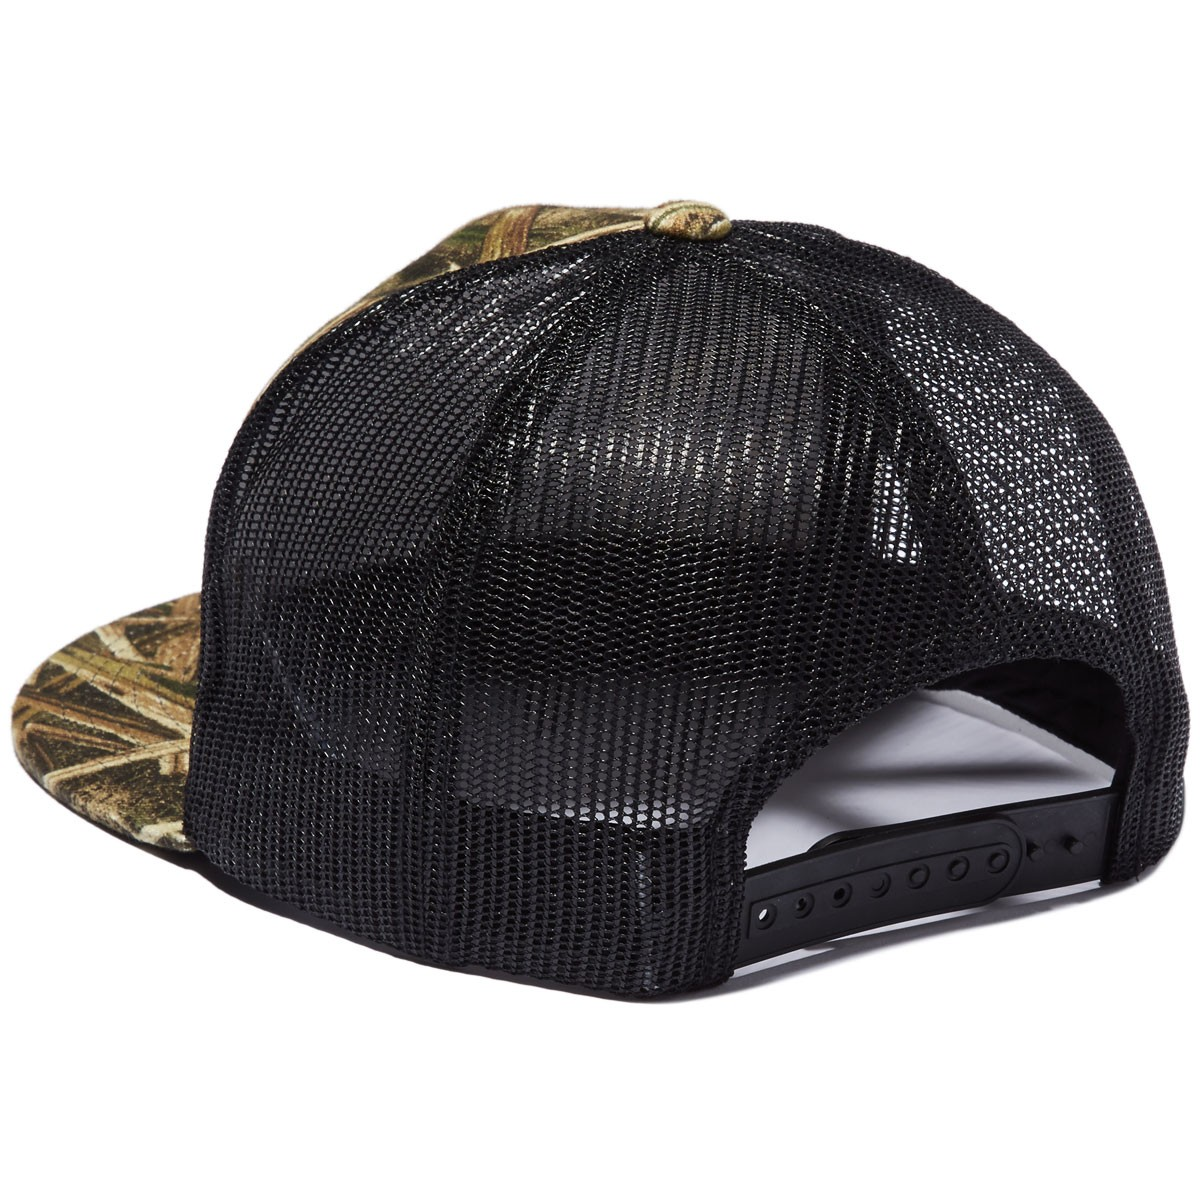 competitive price 4a249 a580a ... inexpensive salty crew big mouth trucker hat b0c7e c28bc